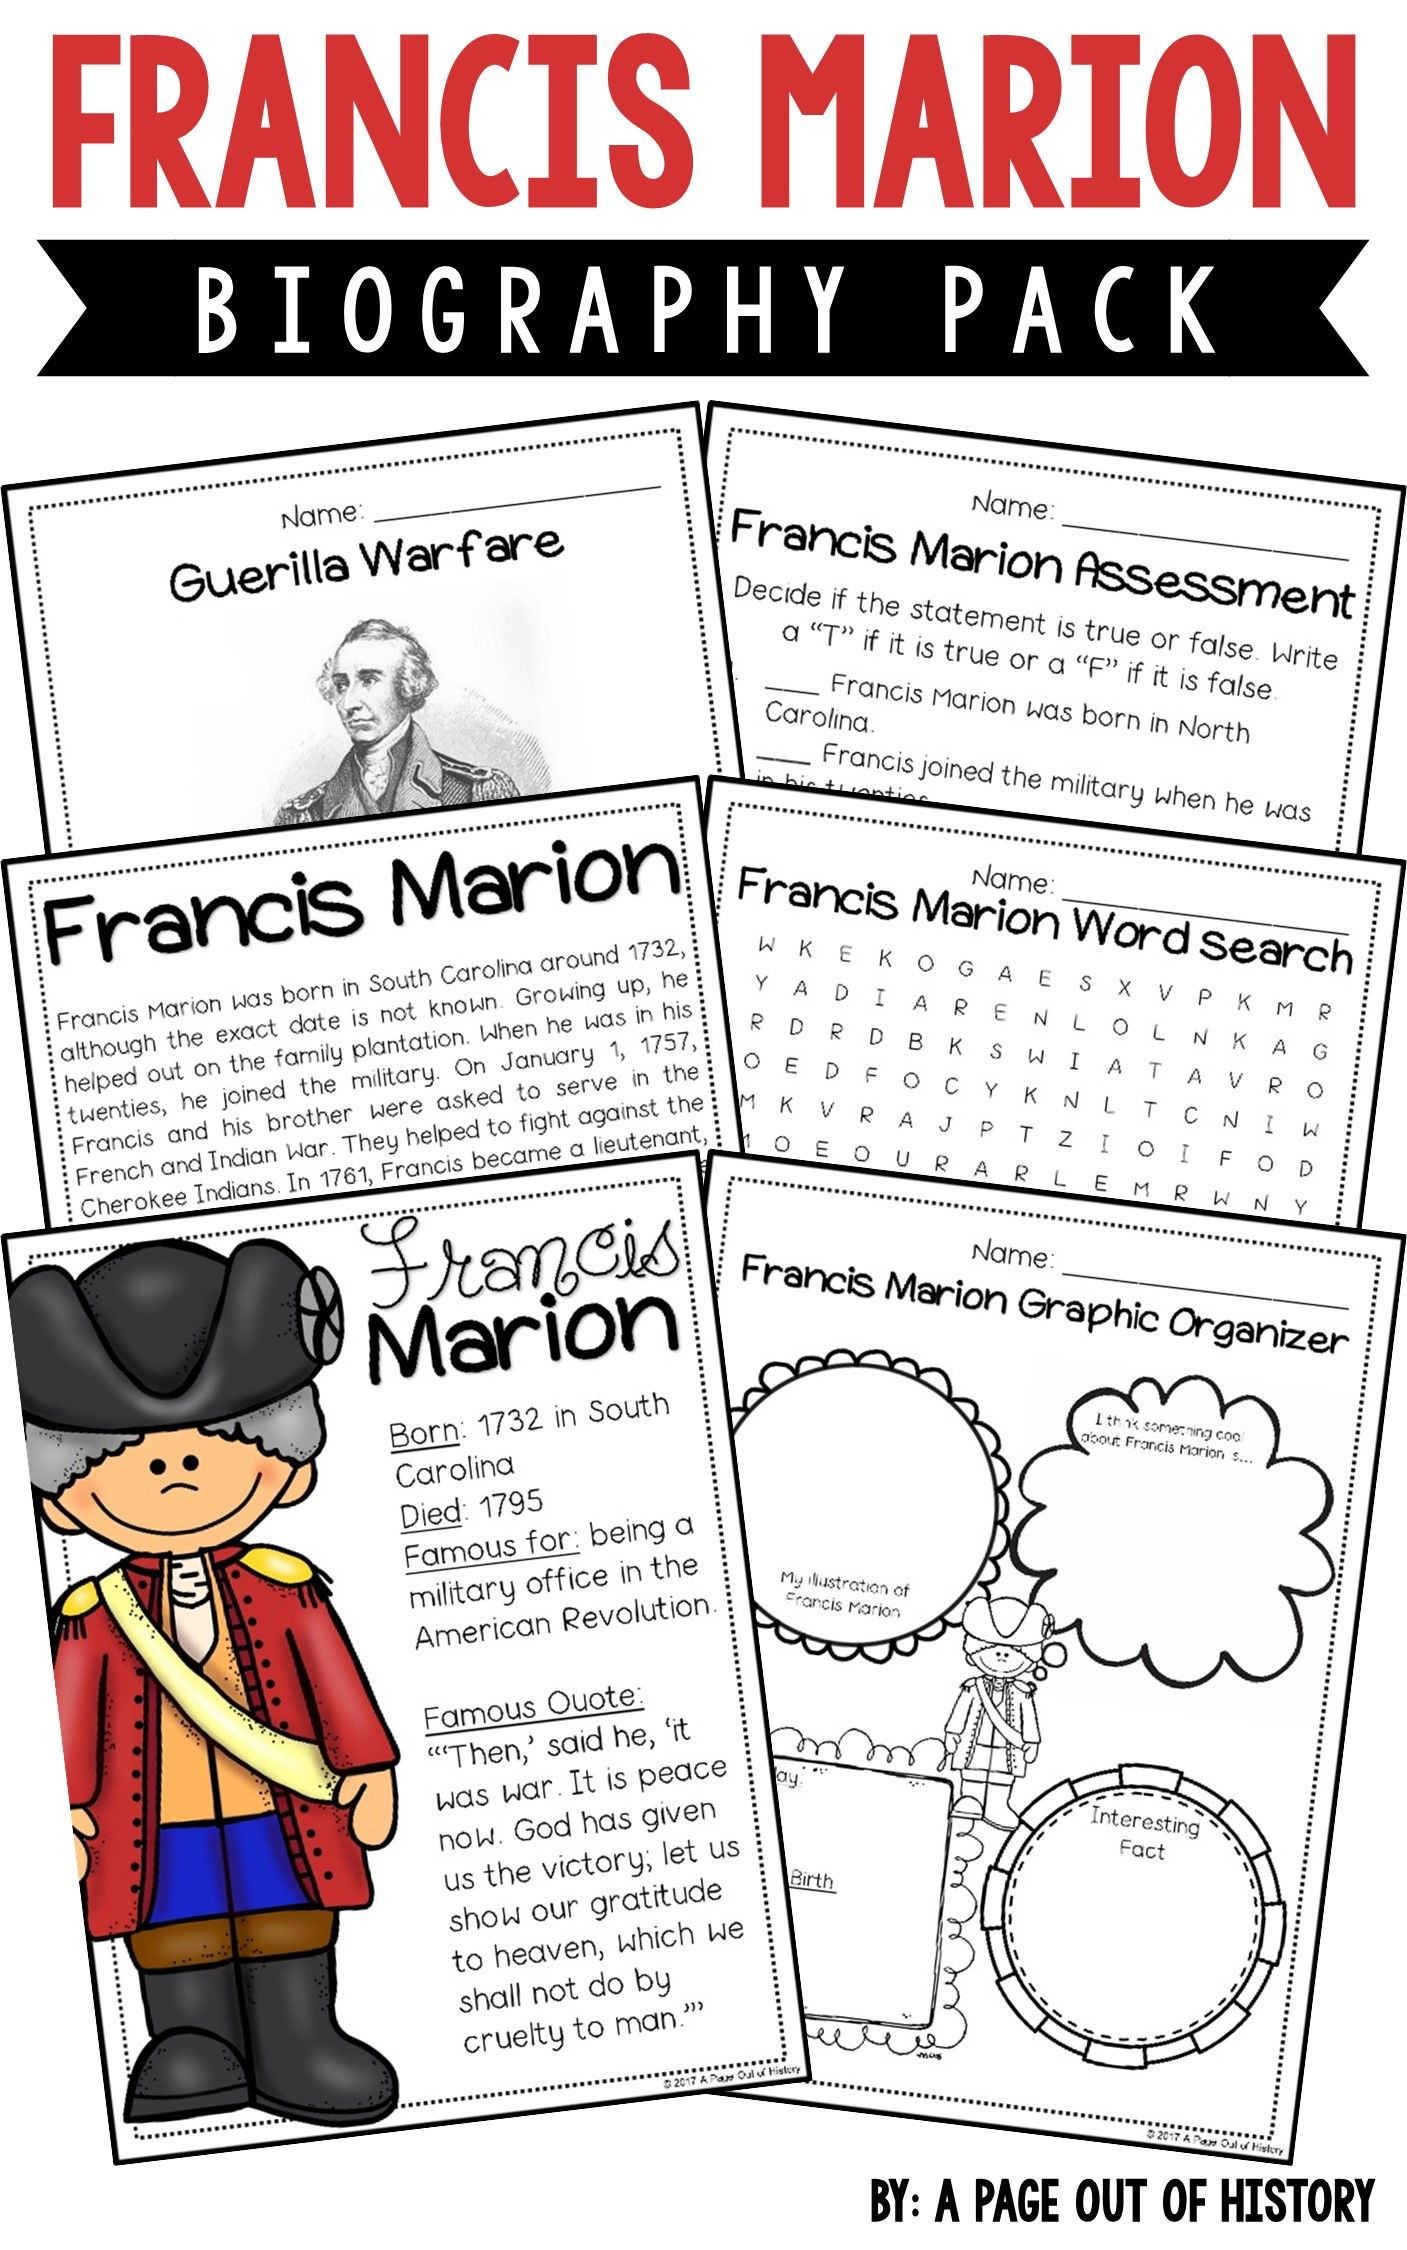 Francis Marion Biography Pack Revolutionary Americans